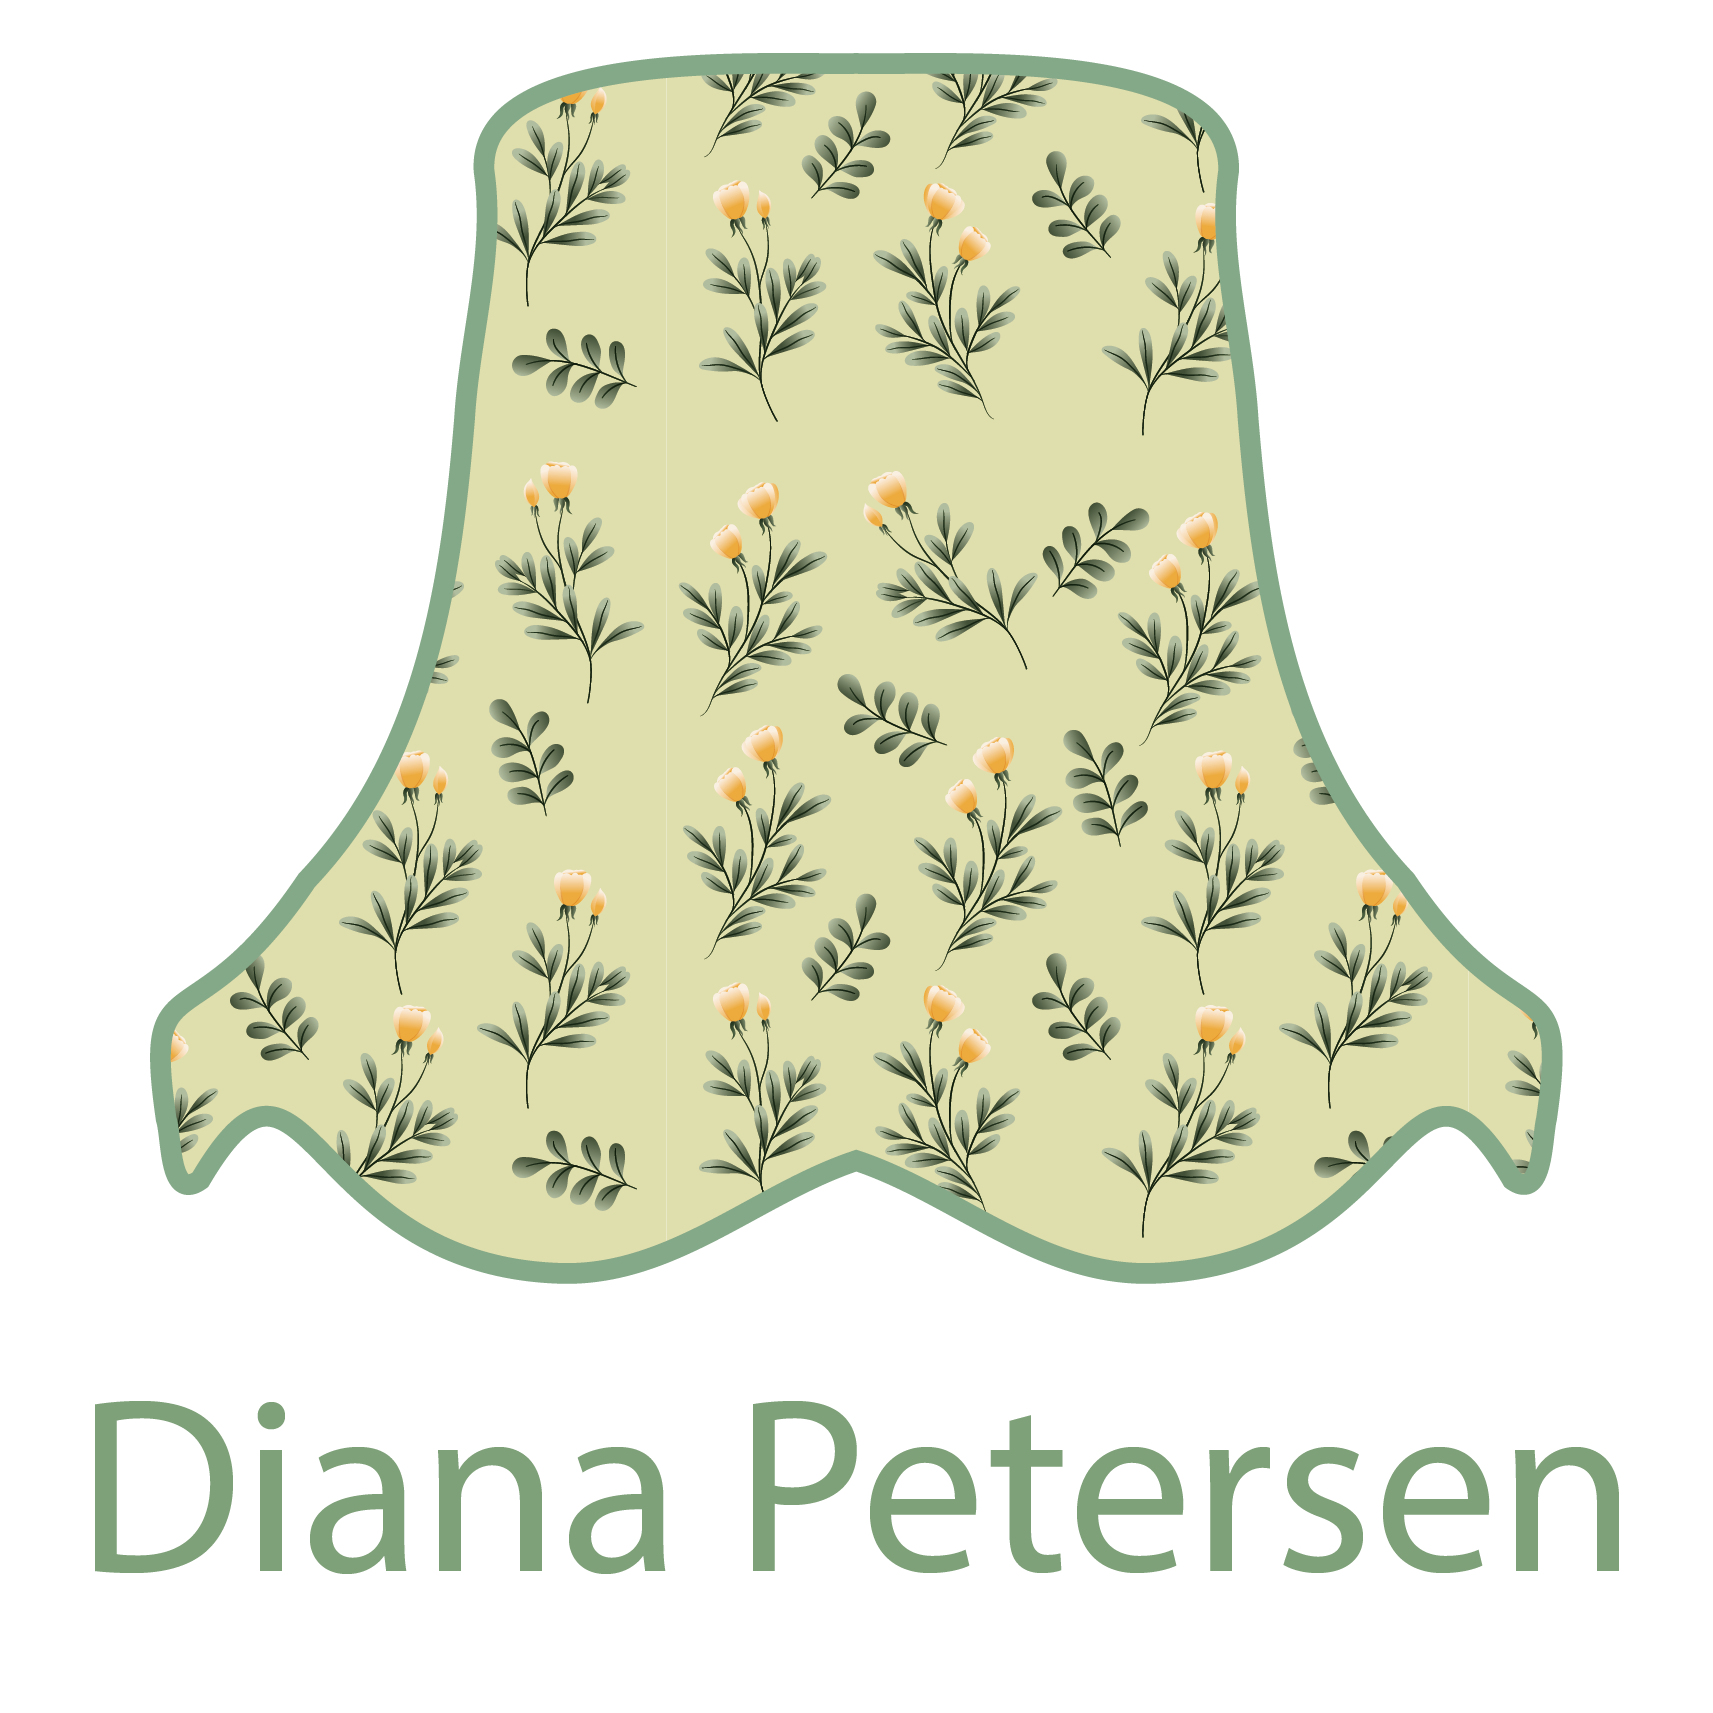 Diana Petersen Square Logo